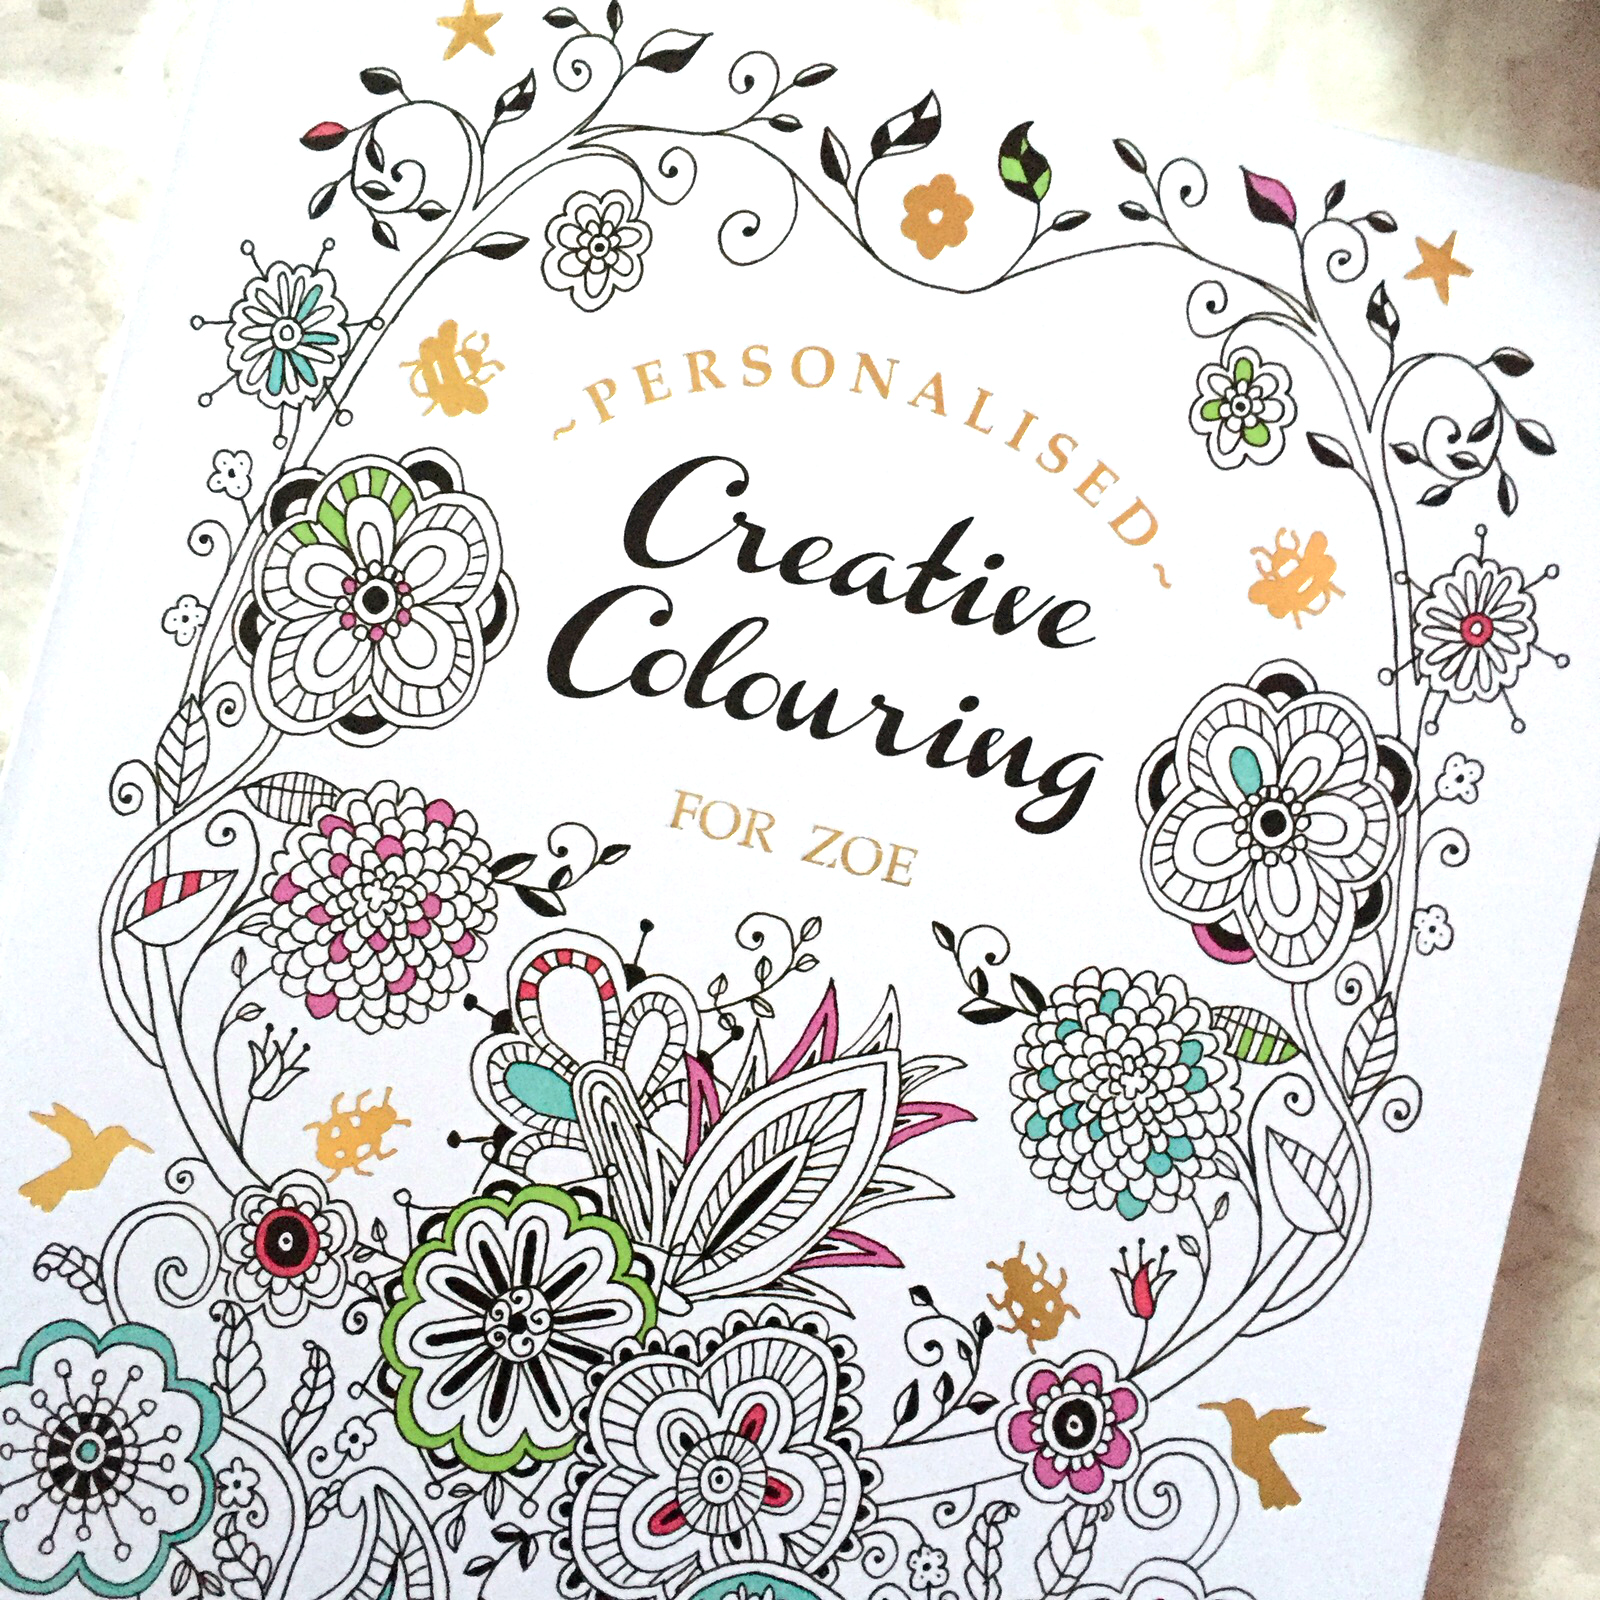 Coloring books for adults and children - Personalised Colouring Books For Adults And Children